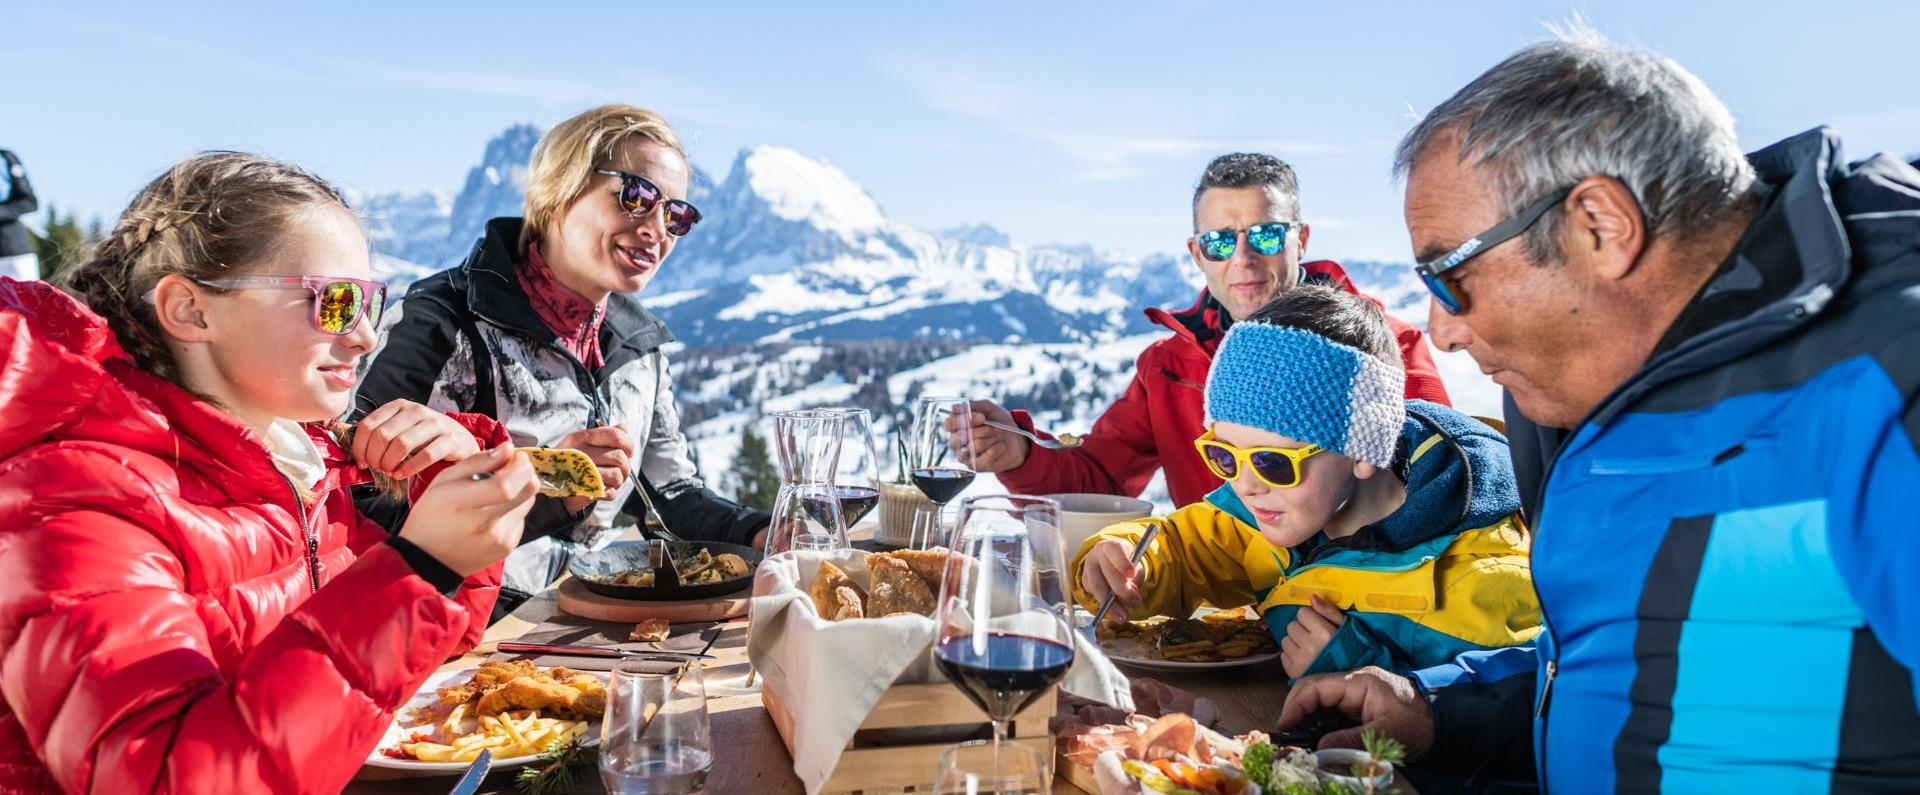 seiser-alm-marketing-harald-wisthaler-dolomiti-superski